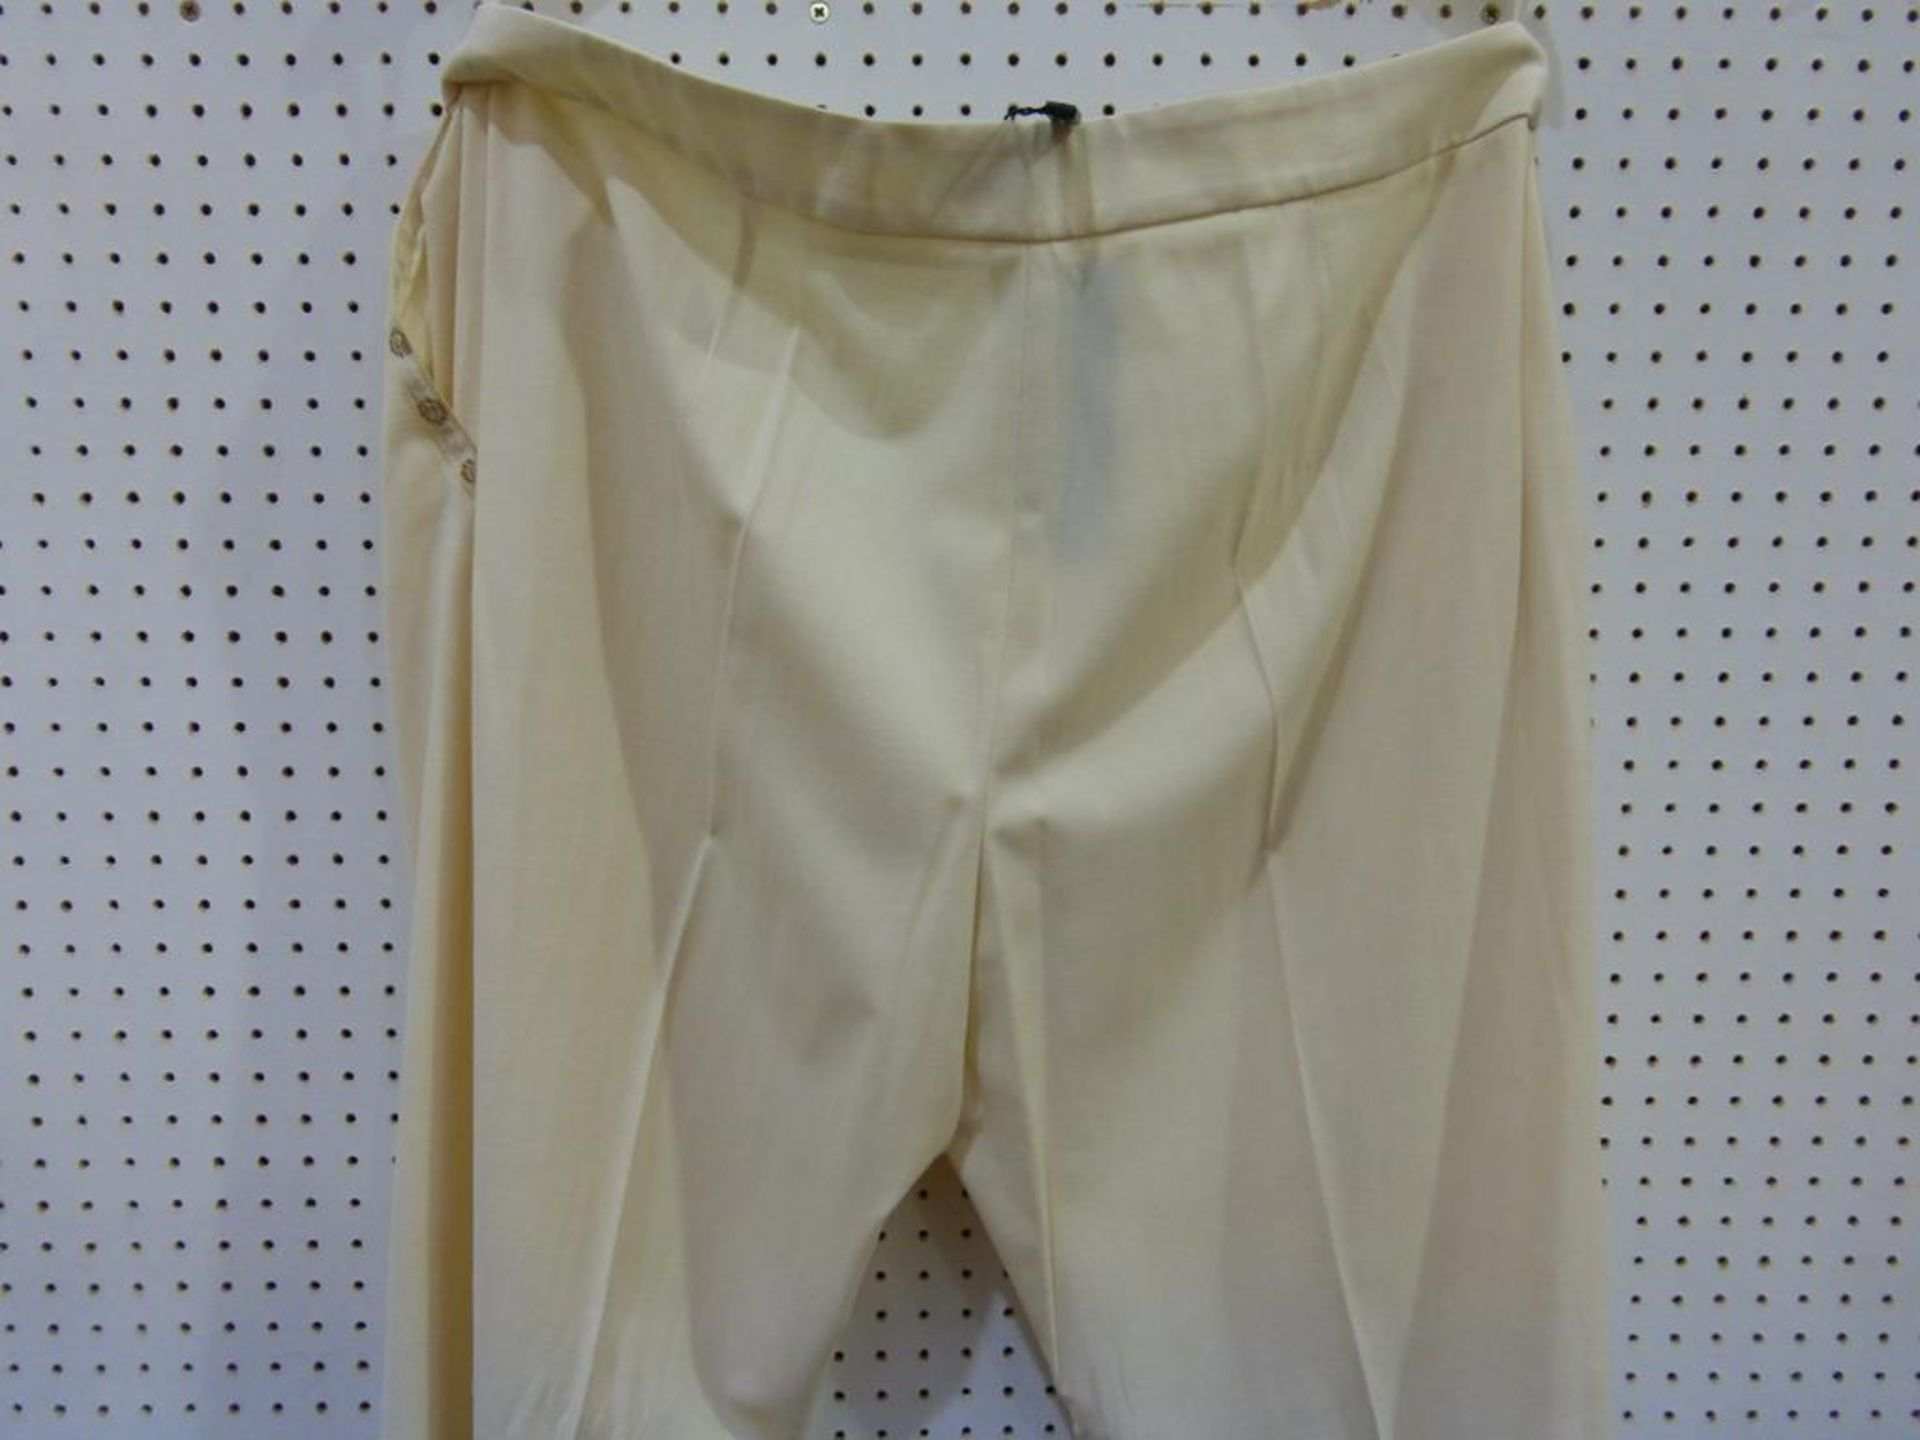 Lot 8054 - * A total of seventeen Ladies Garments to include examples by Gil Bret, Verse, Separa, Apanage, Kate